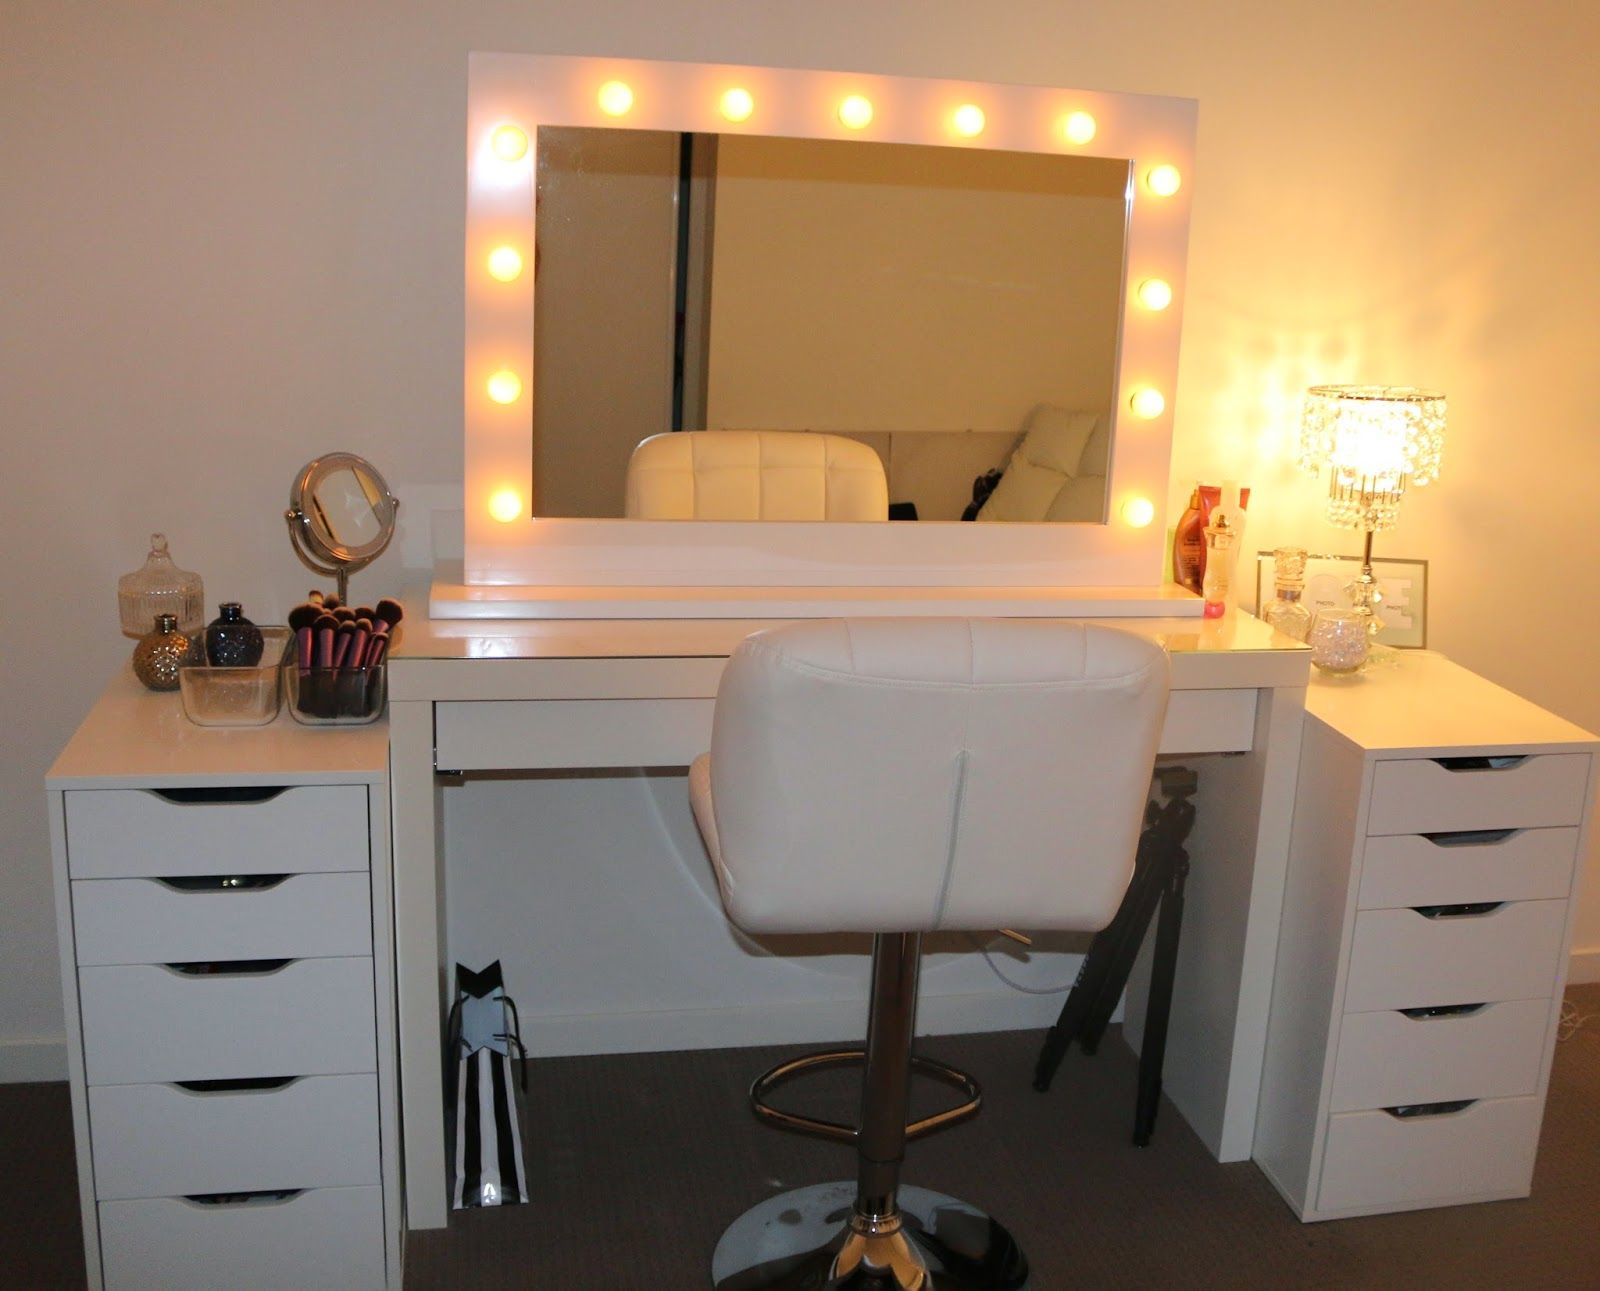 Square Mirror With Lights On Makeup Vanity Table White Chair And Drawers